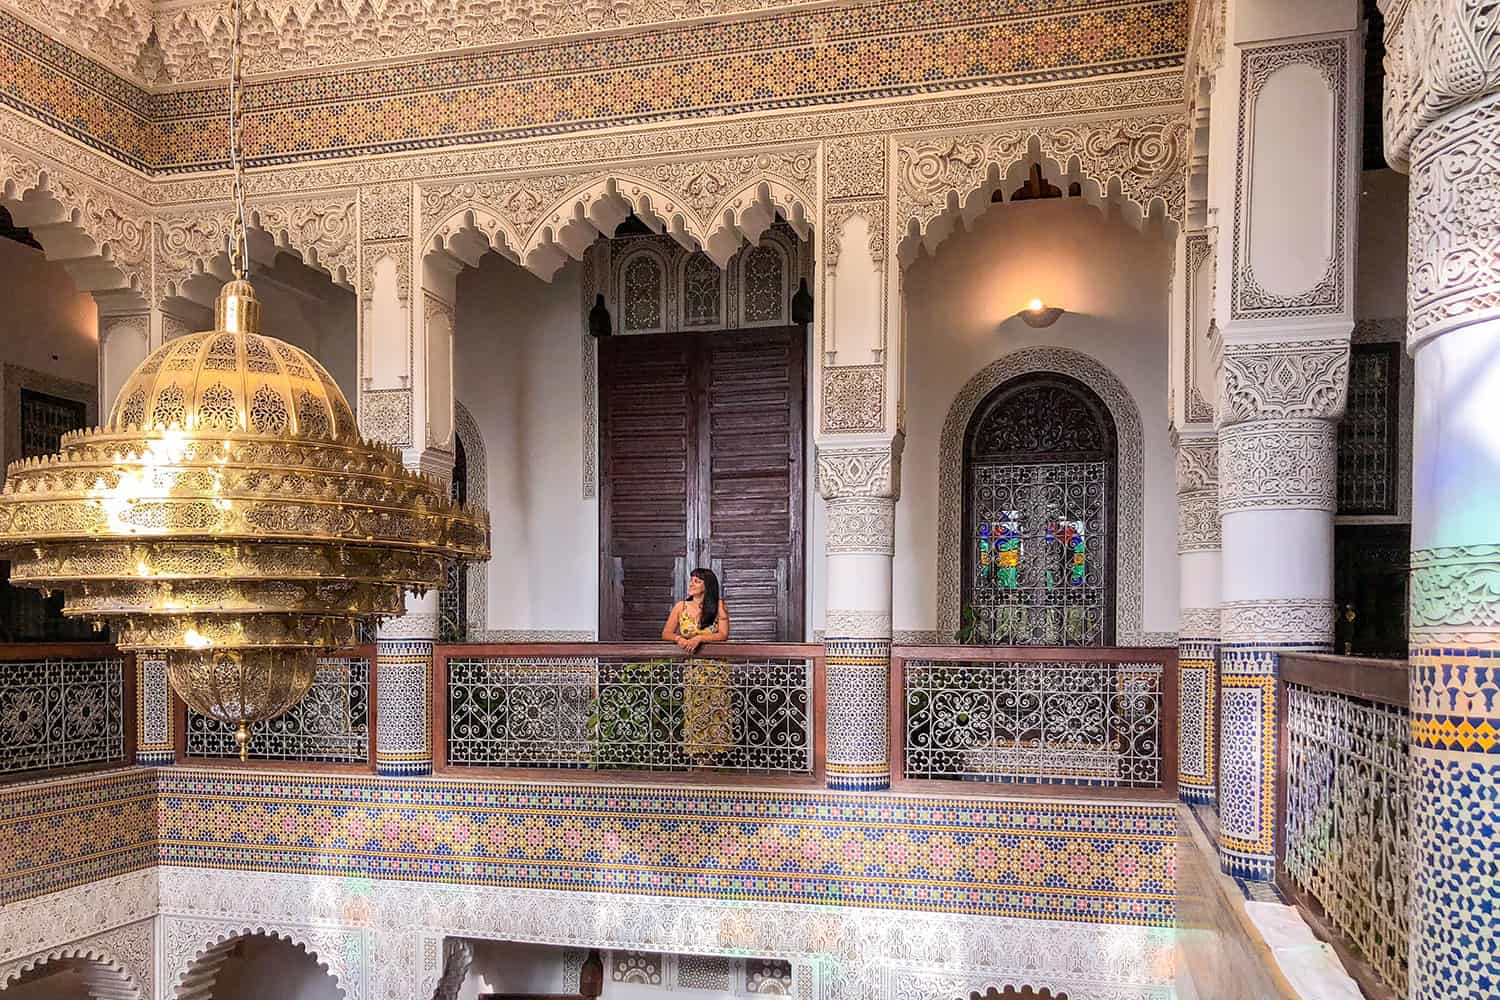 Where to Stay in Fes, Morocco – Should I choose a Moroccan Riad or a Hotel?